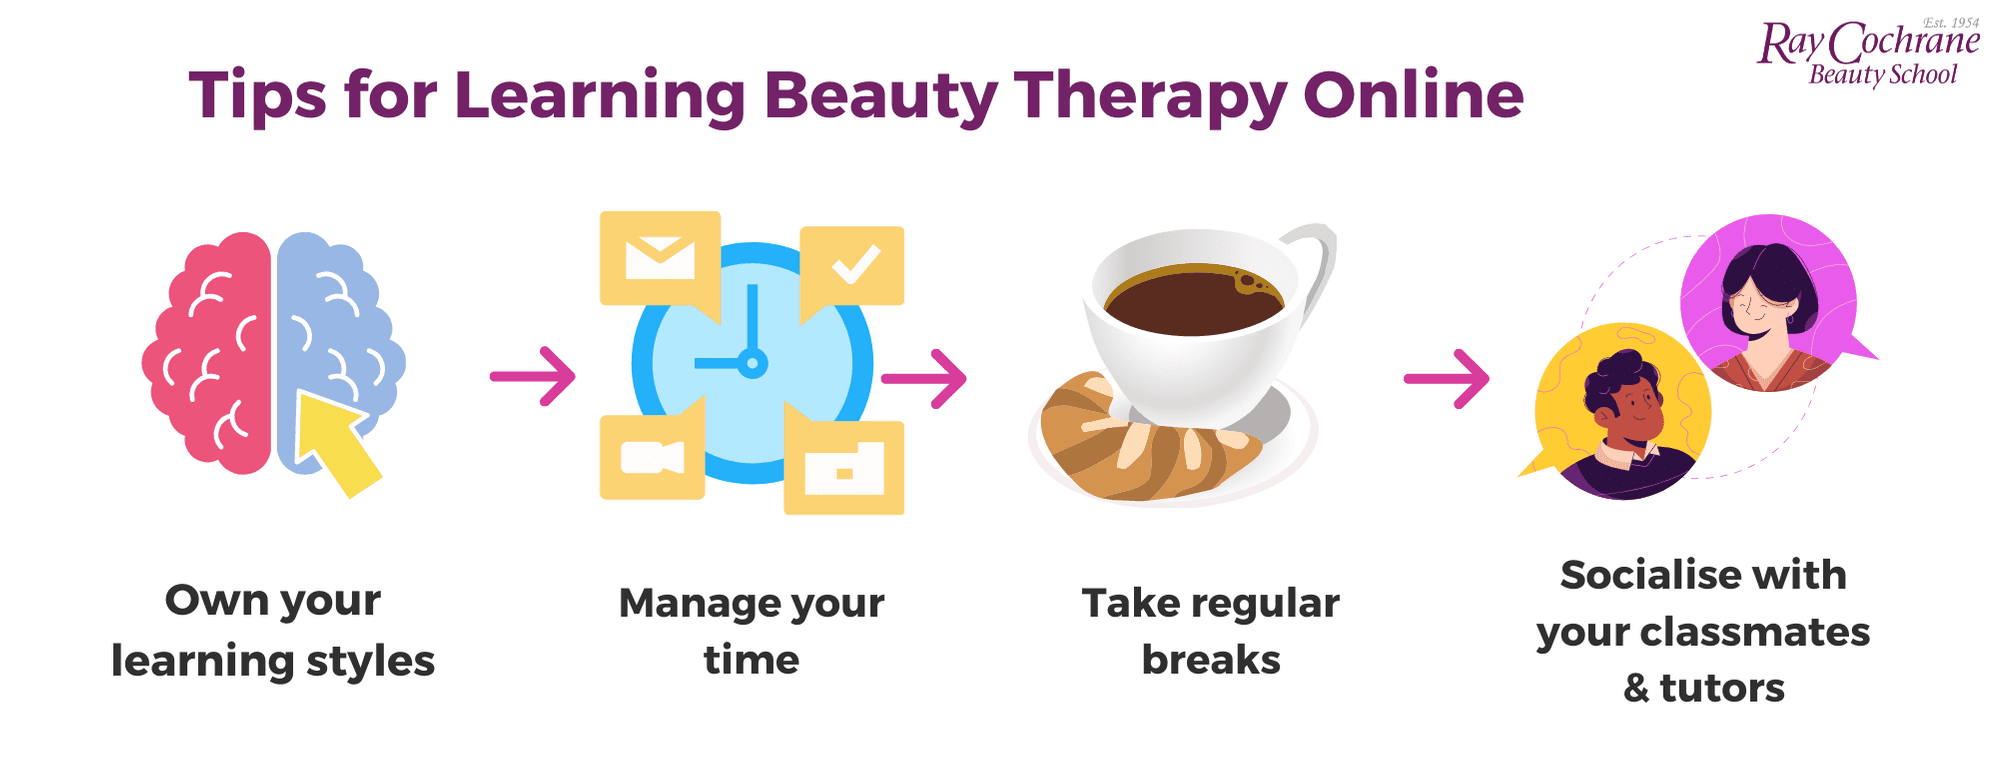 tips for learning beauty therapy online